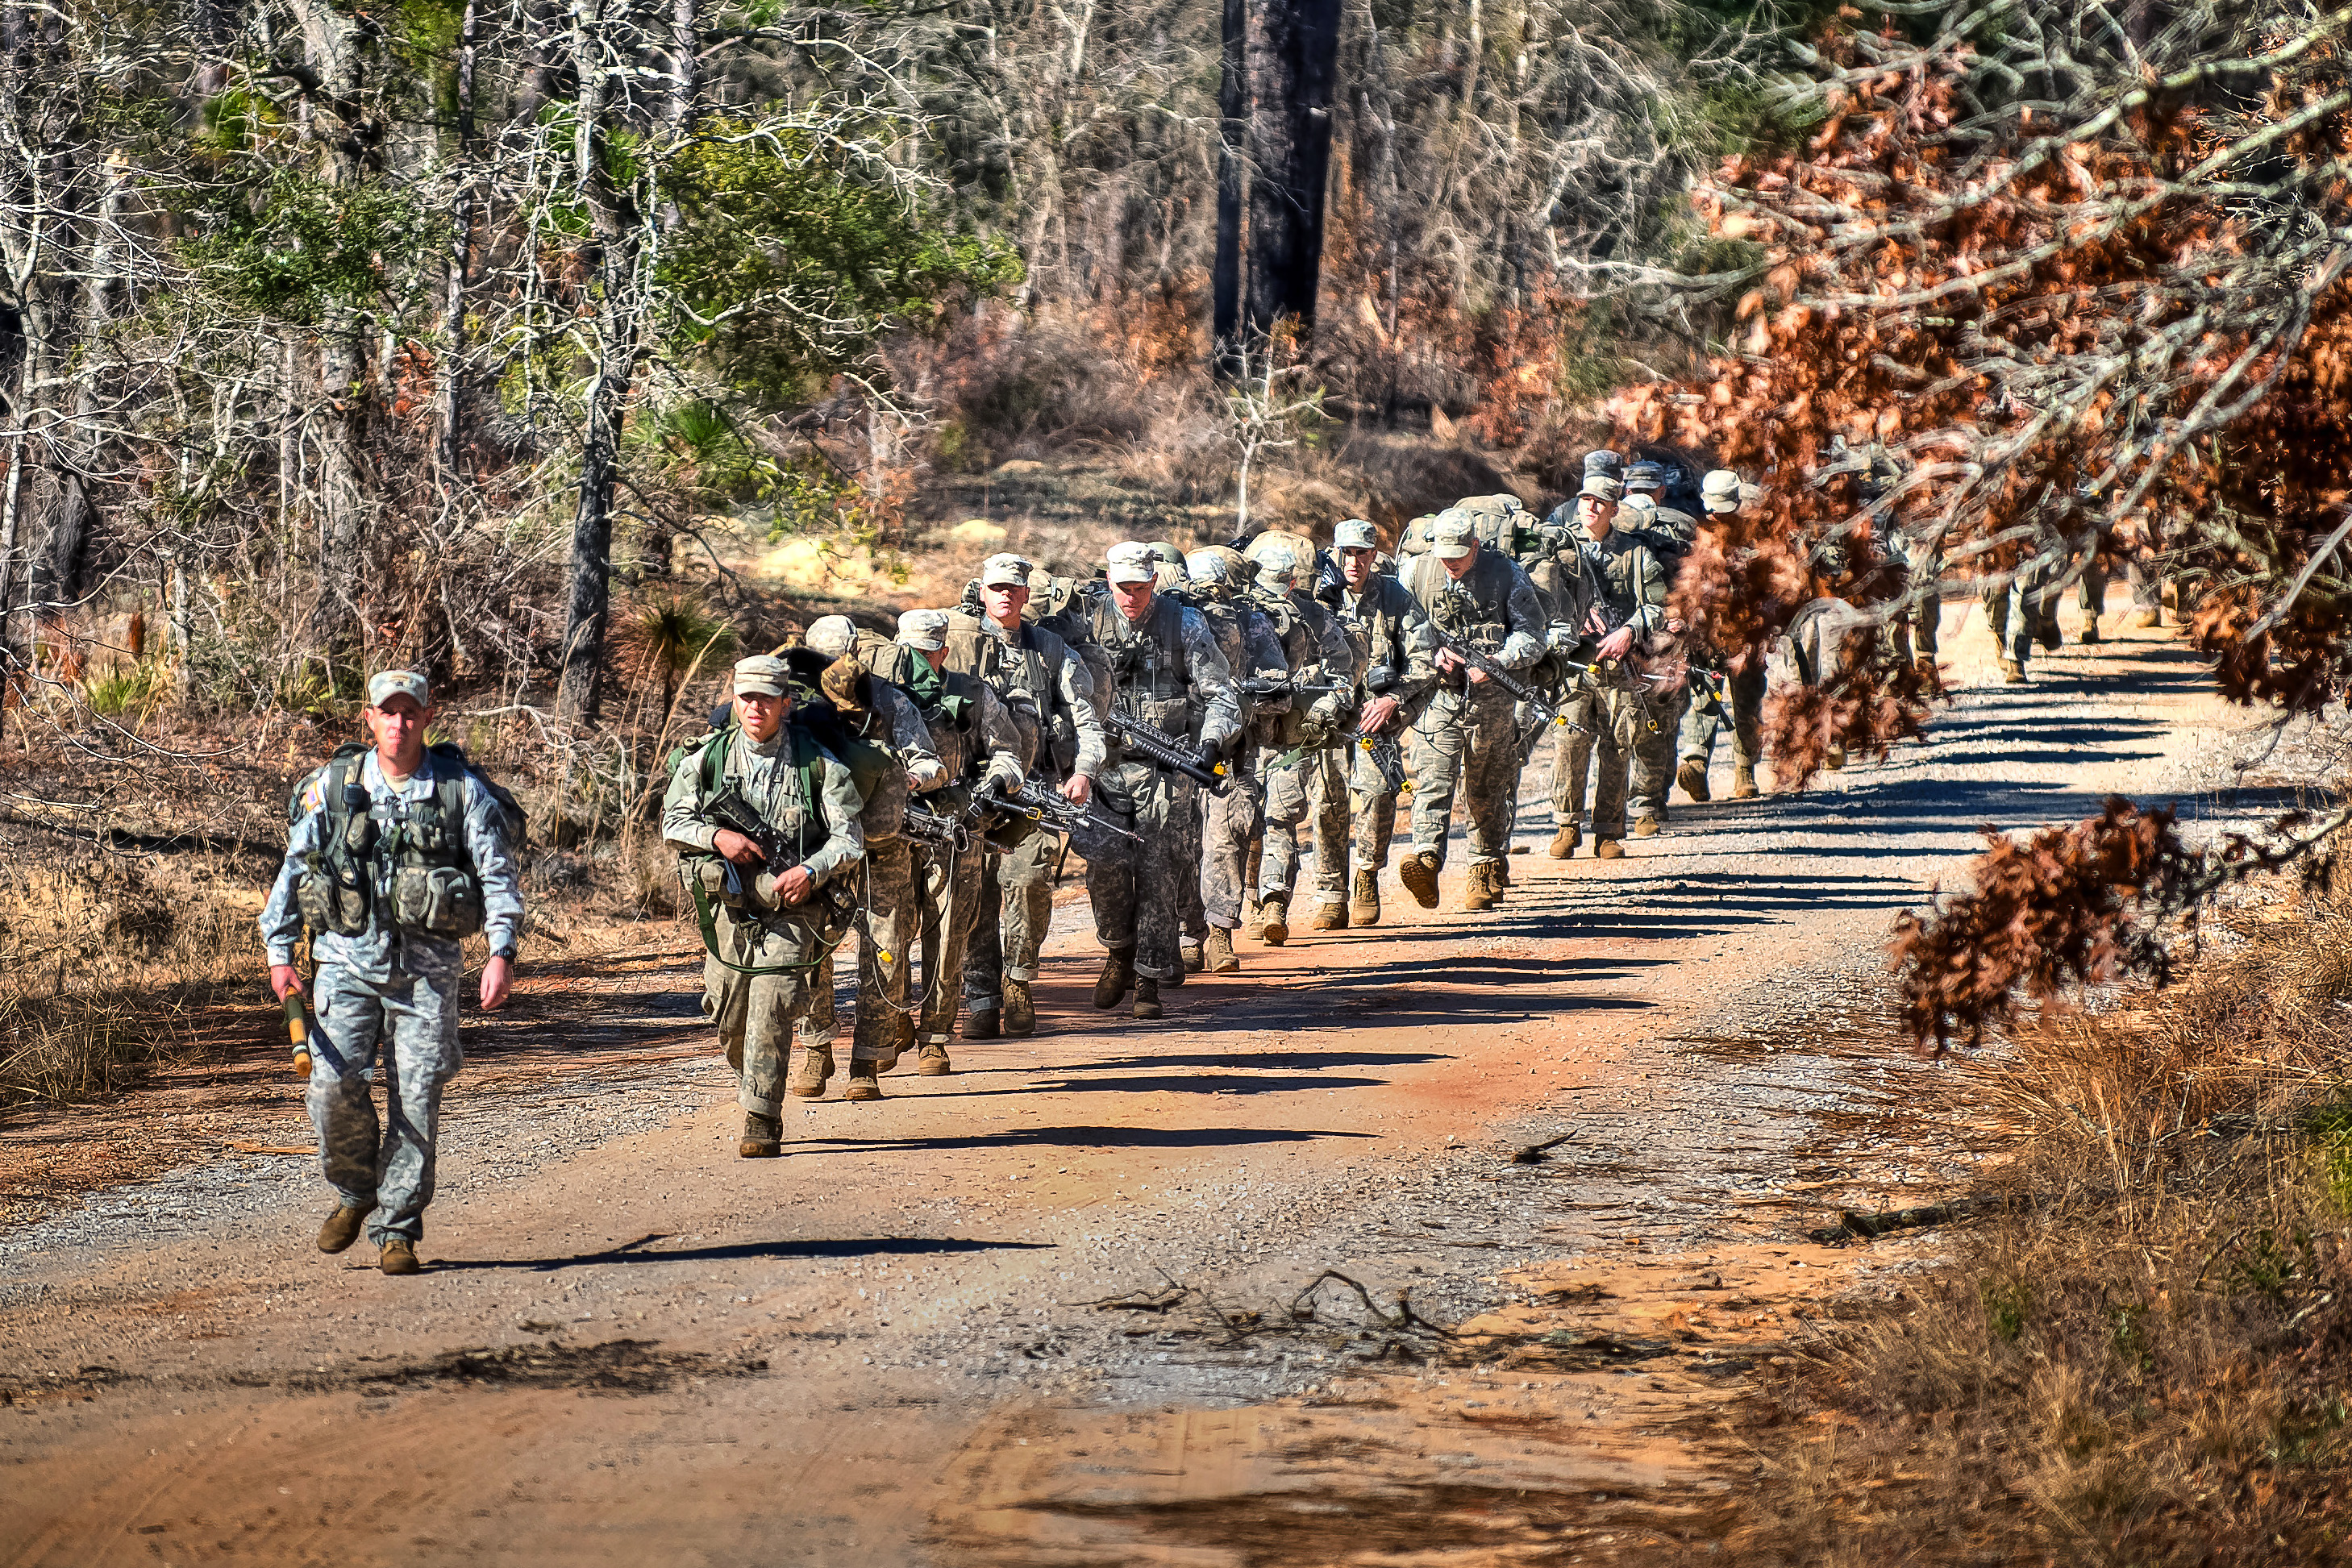 essay military training The essay is the most important part of a college appllication, see sample essays   from attending sere (survival/pow training) in the military and making it.